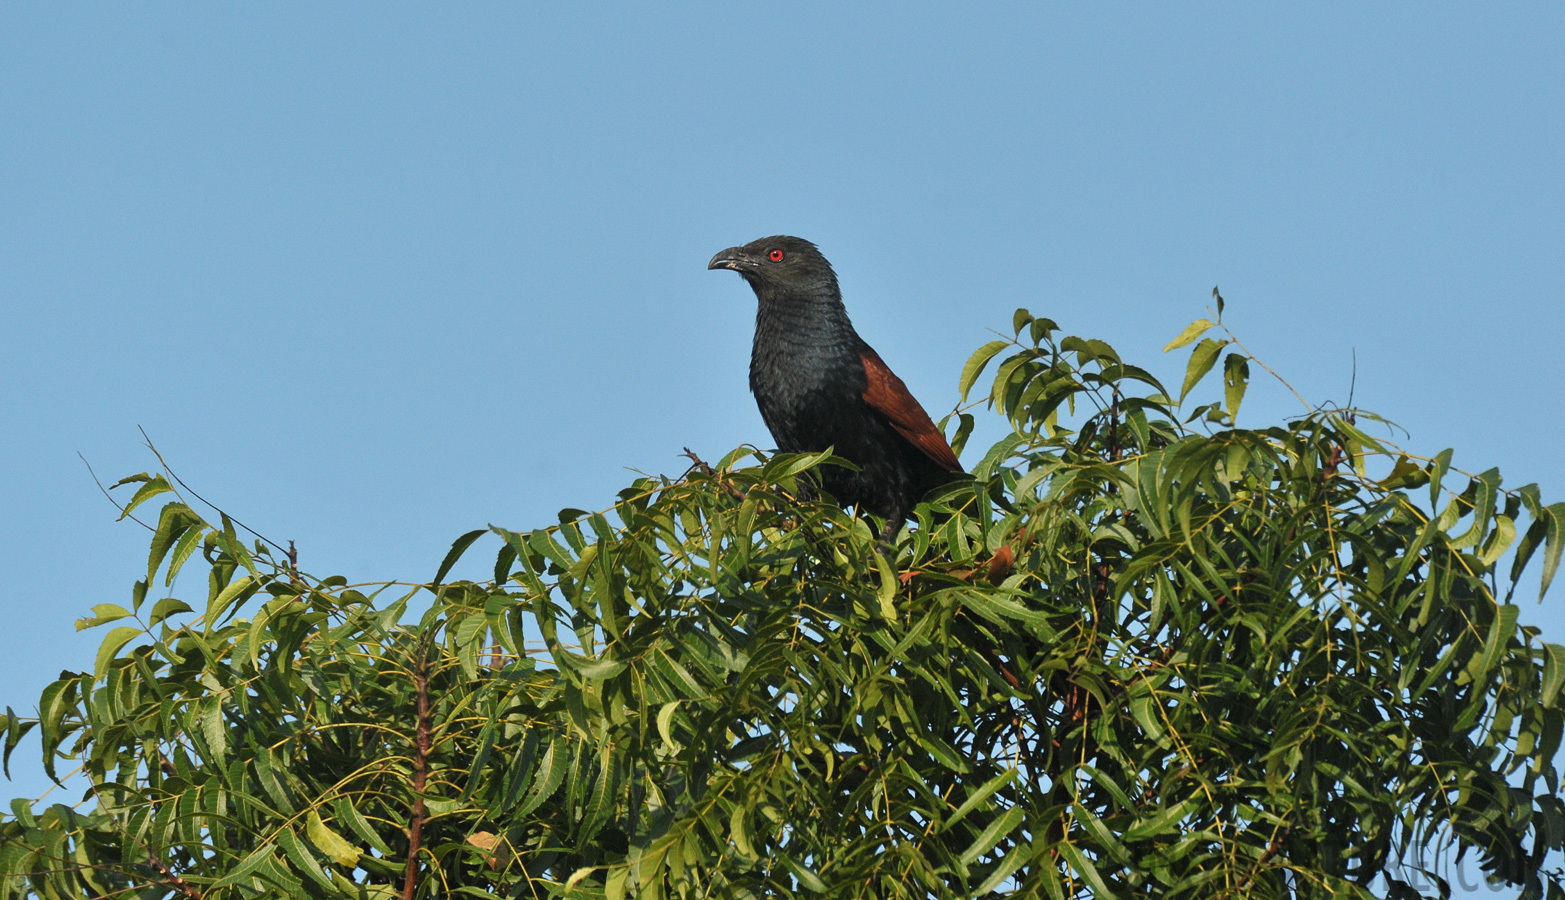 Greater coucal [Centropus sinensis parroti]